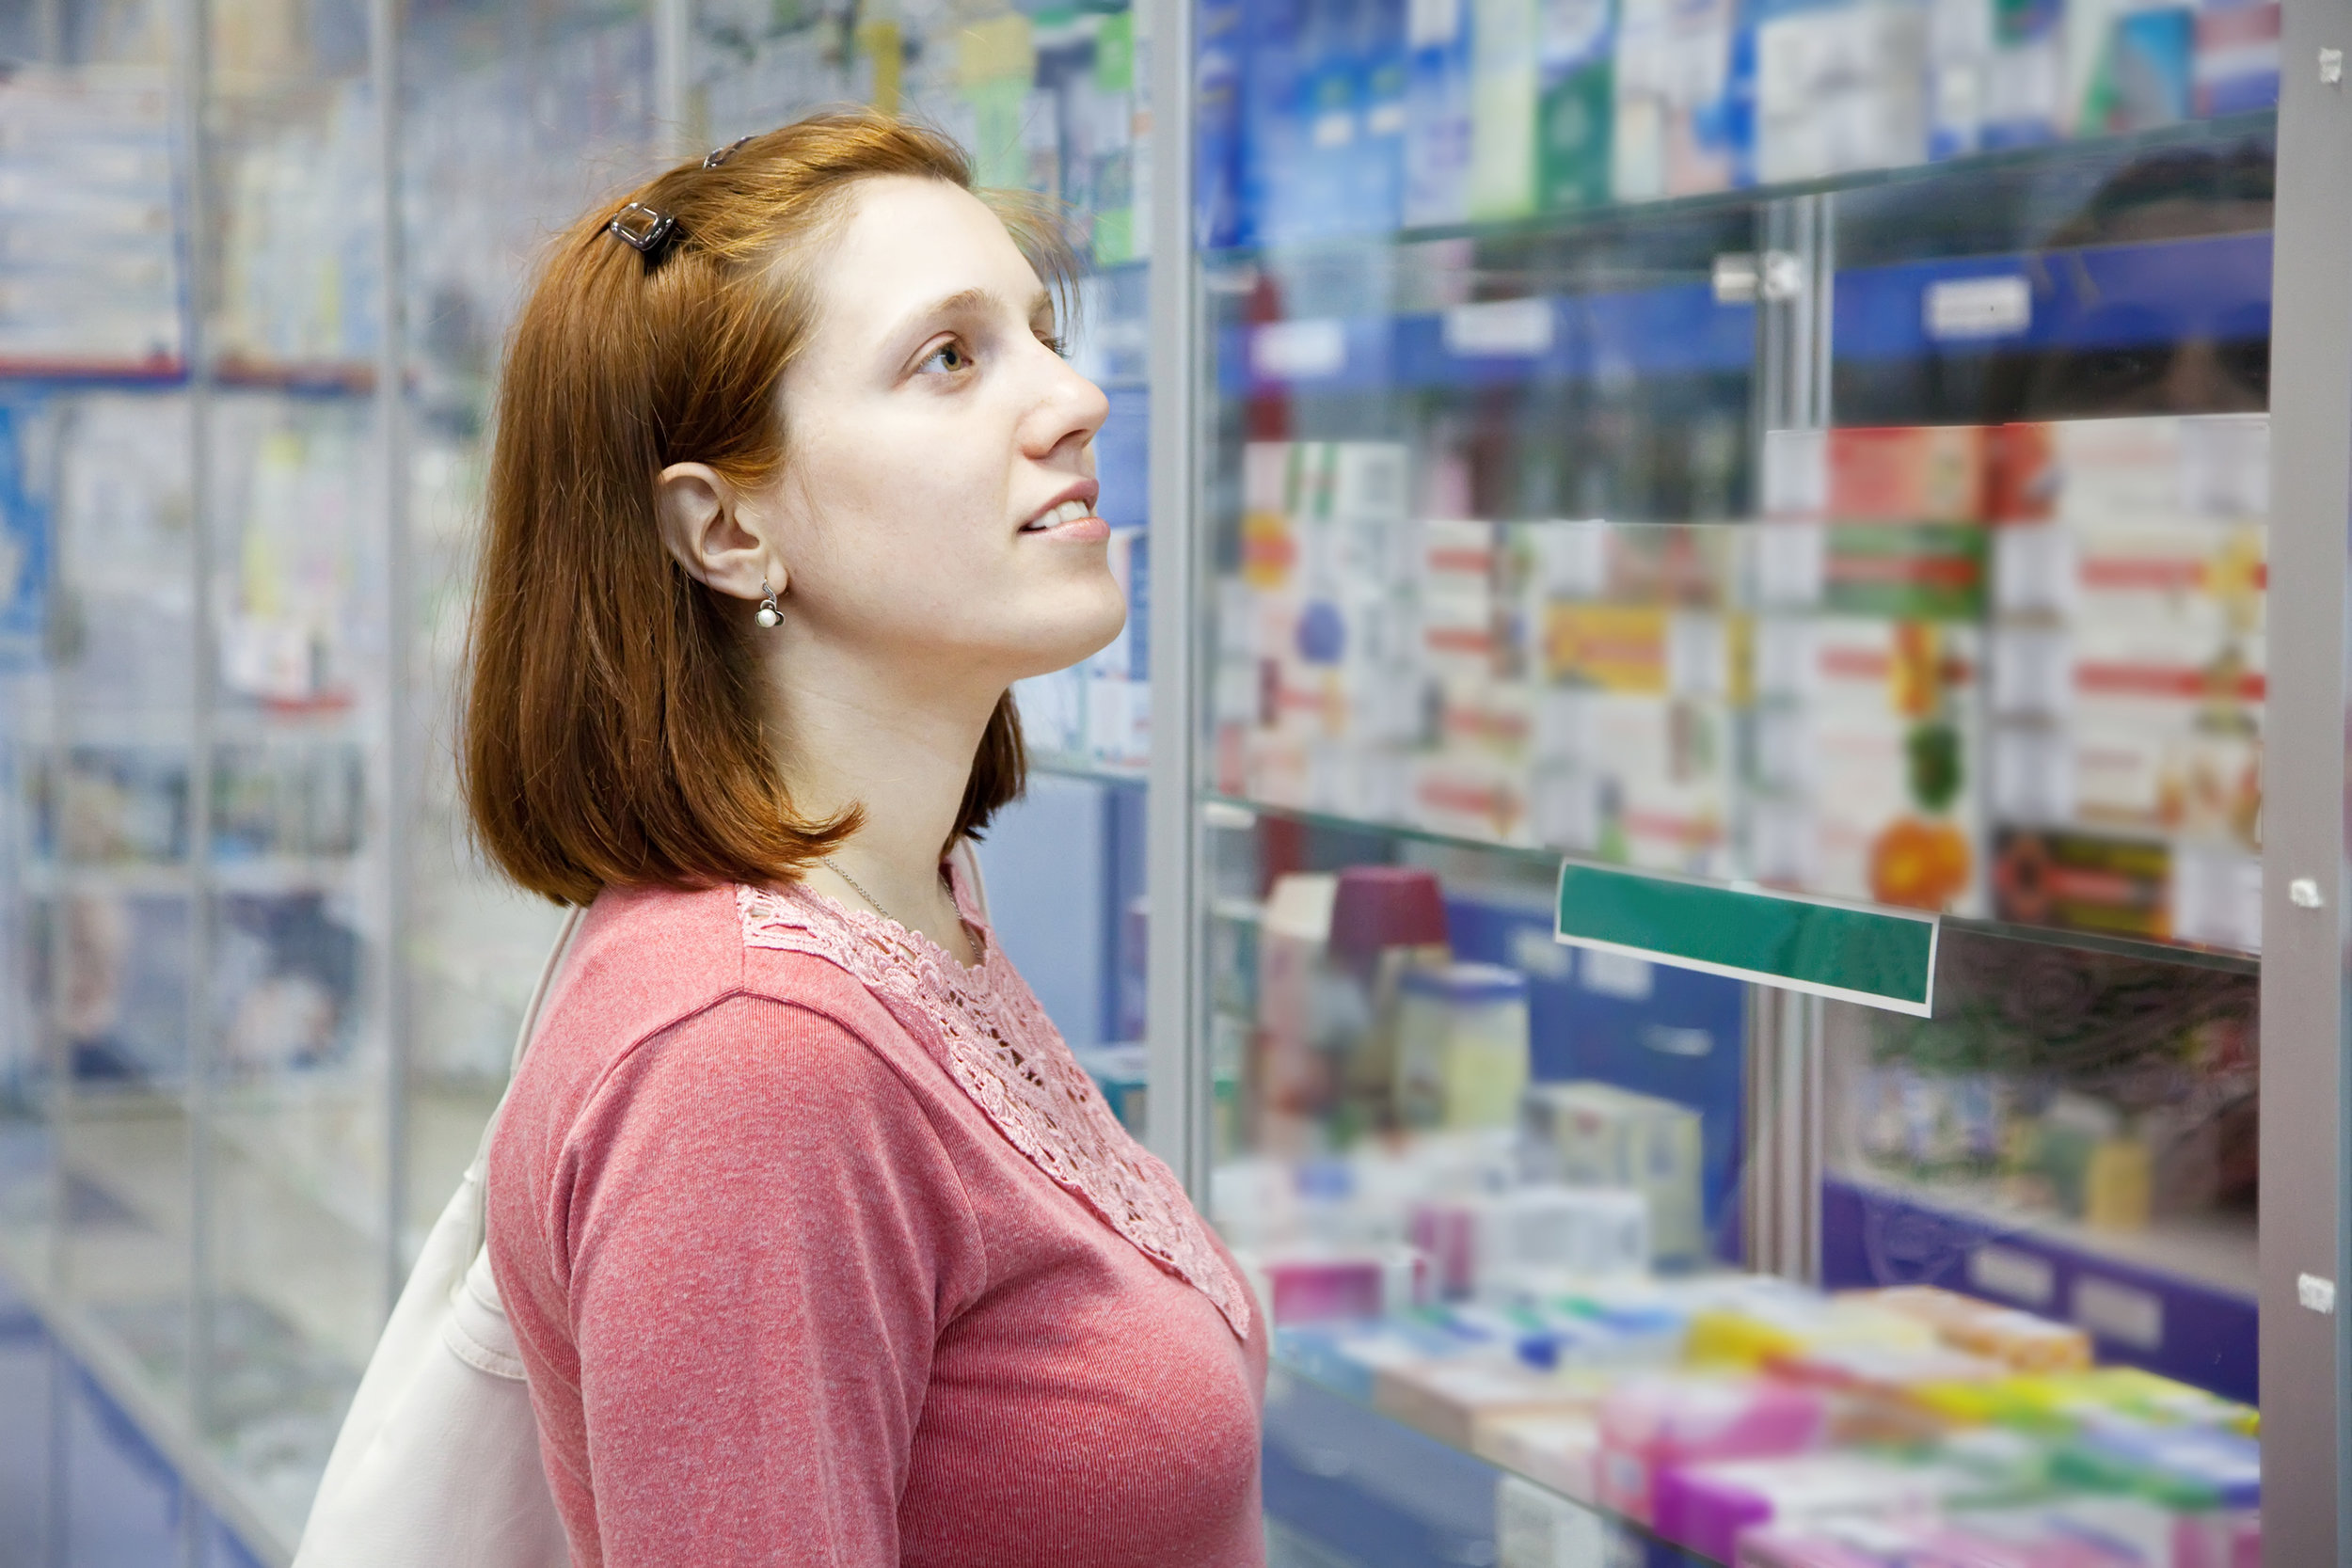 Woman near counter in pharmacy drugstore_Shutterstock_purchased 2016-11-16.jpg